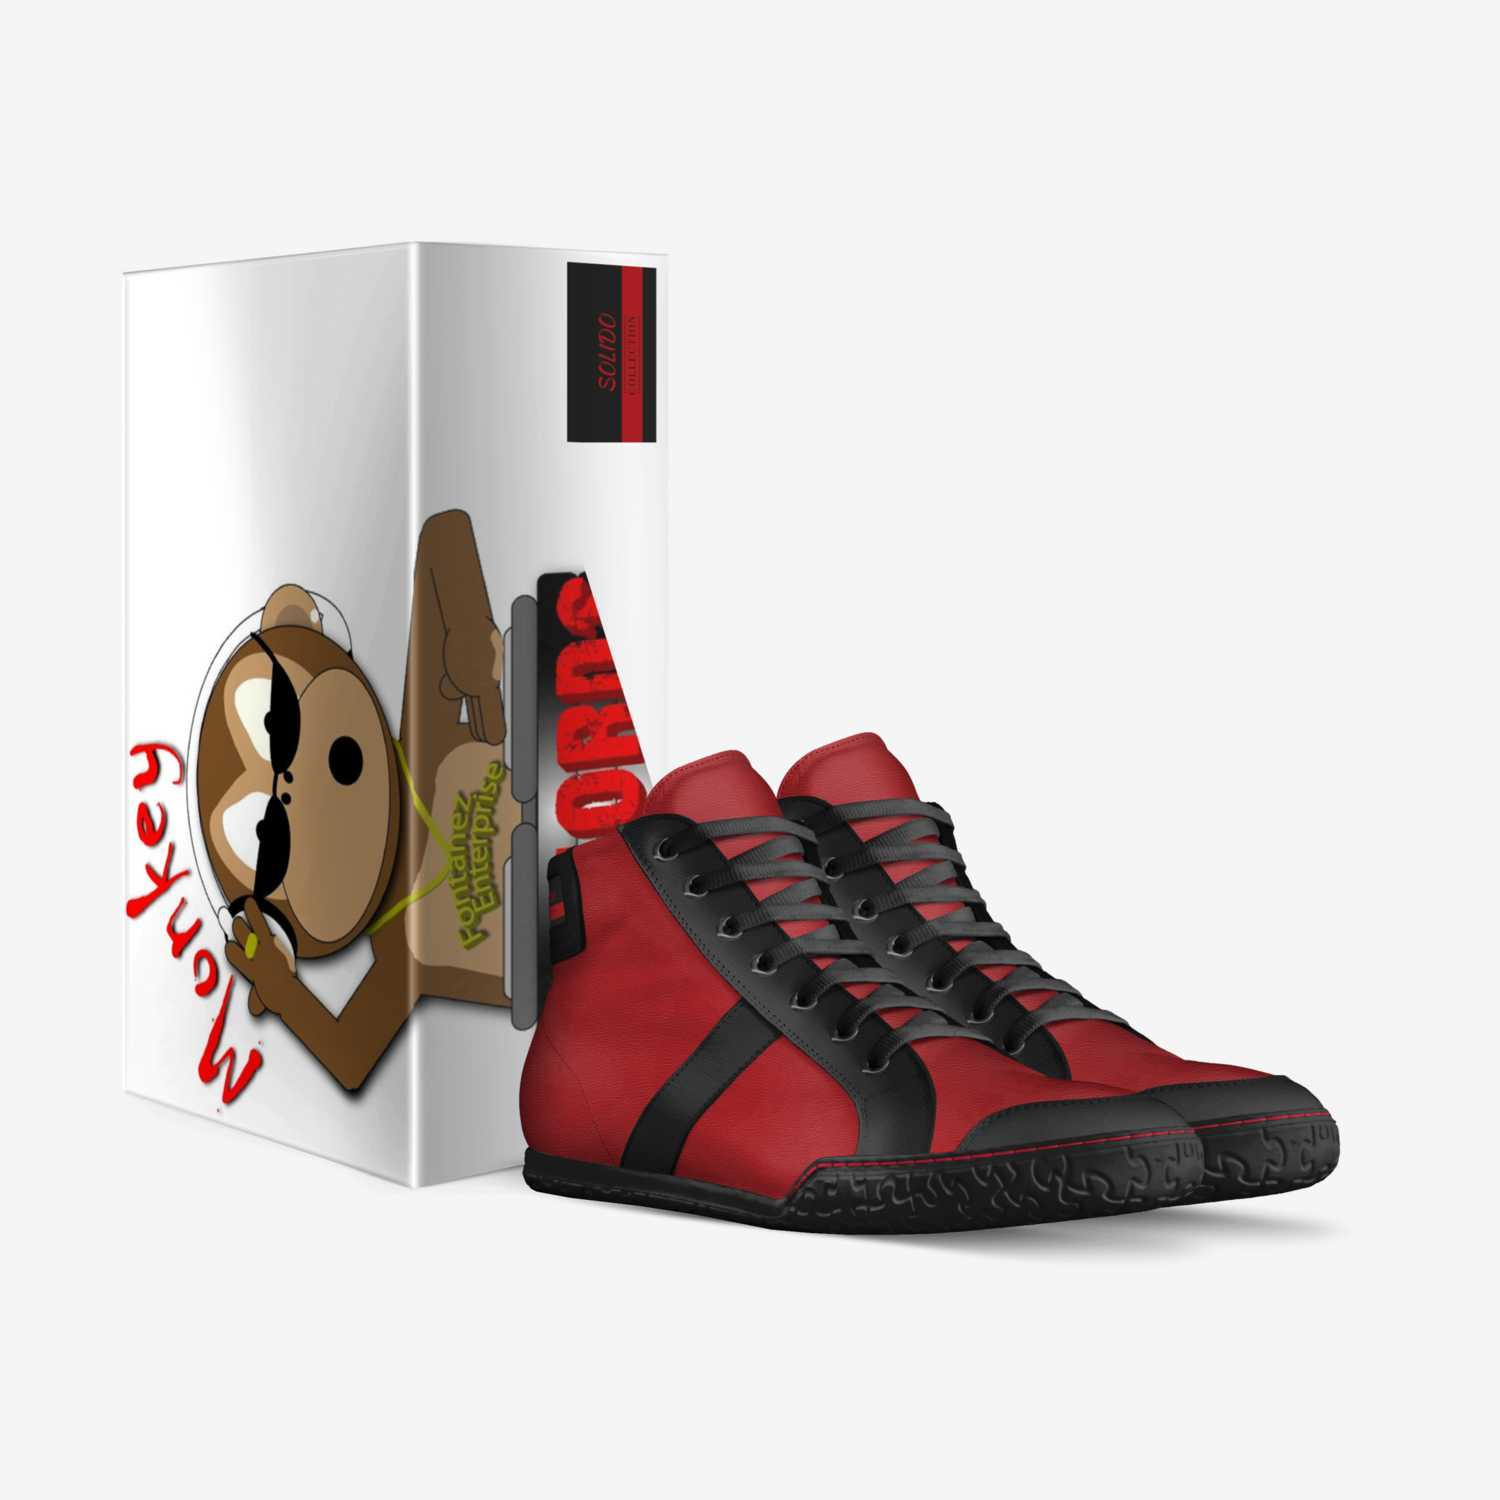 SOLIDO custom made in Italy shoes by Df Eldoggy   Box view